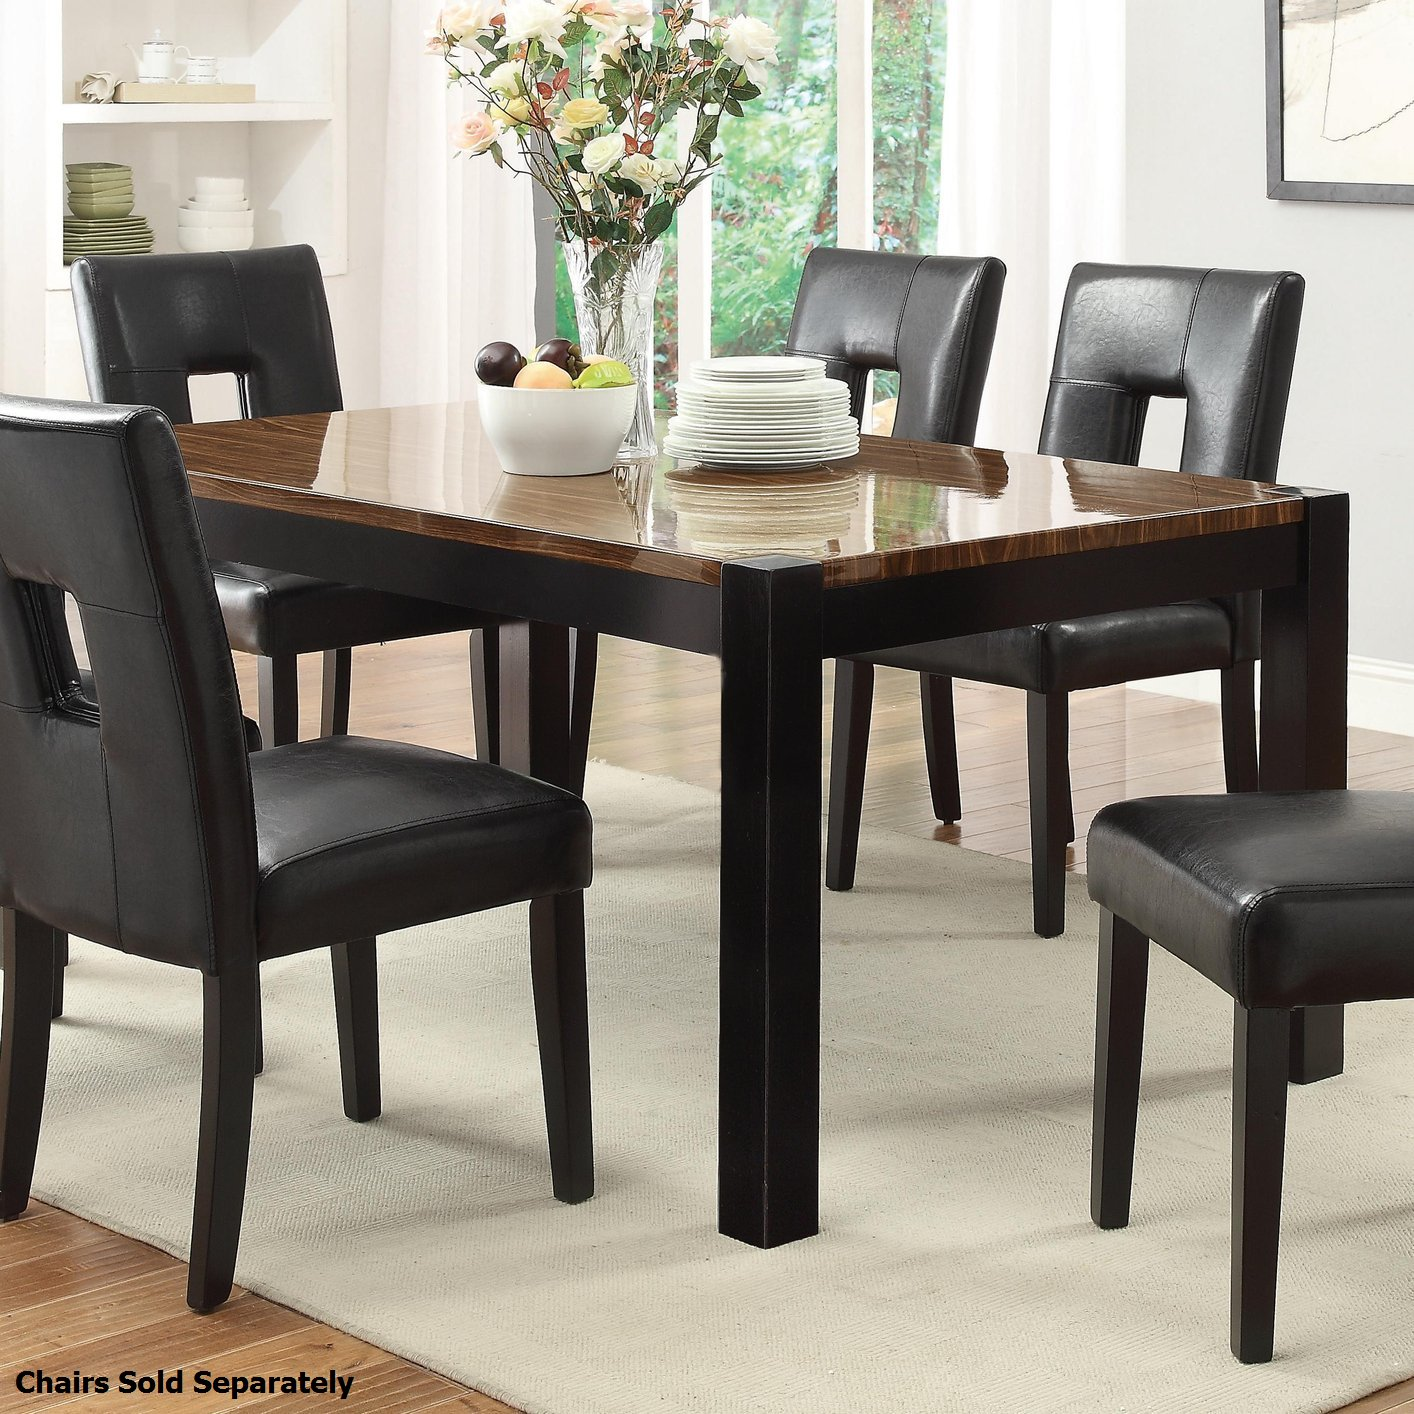 Black wood dining table set - Black Wood Dining Table